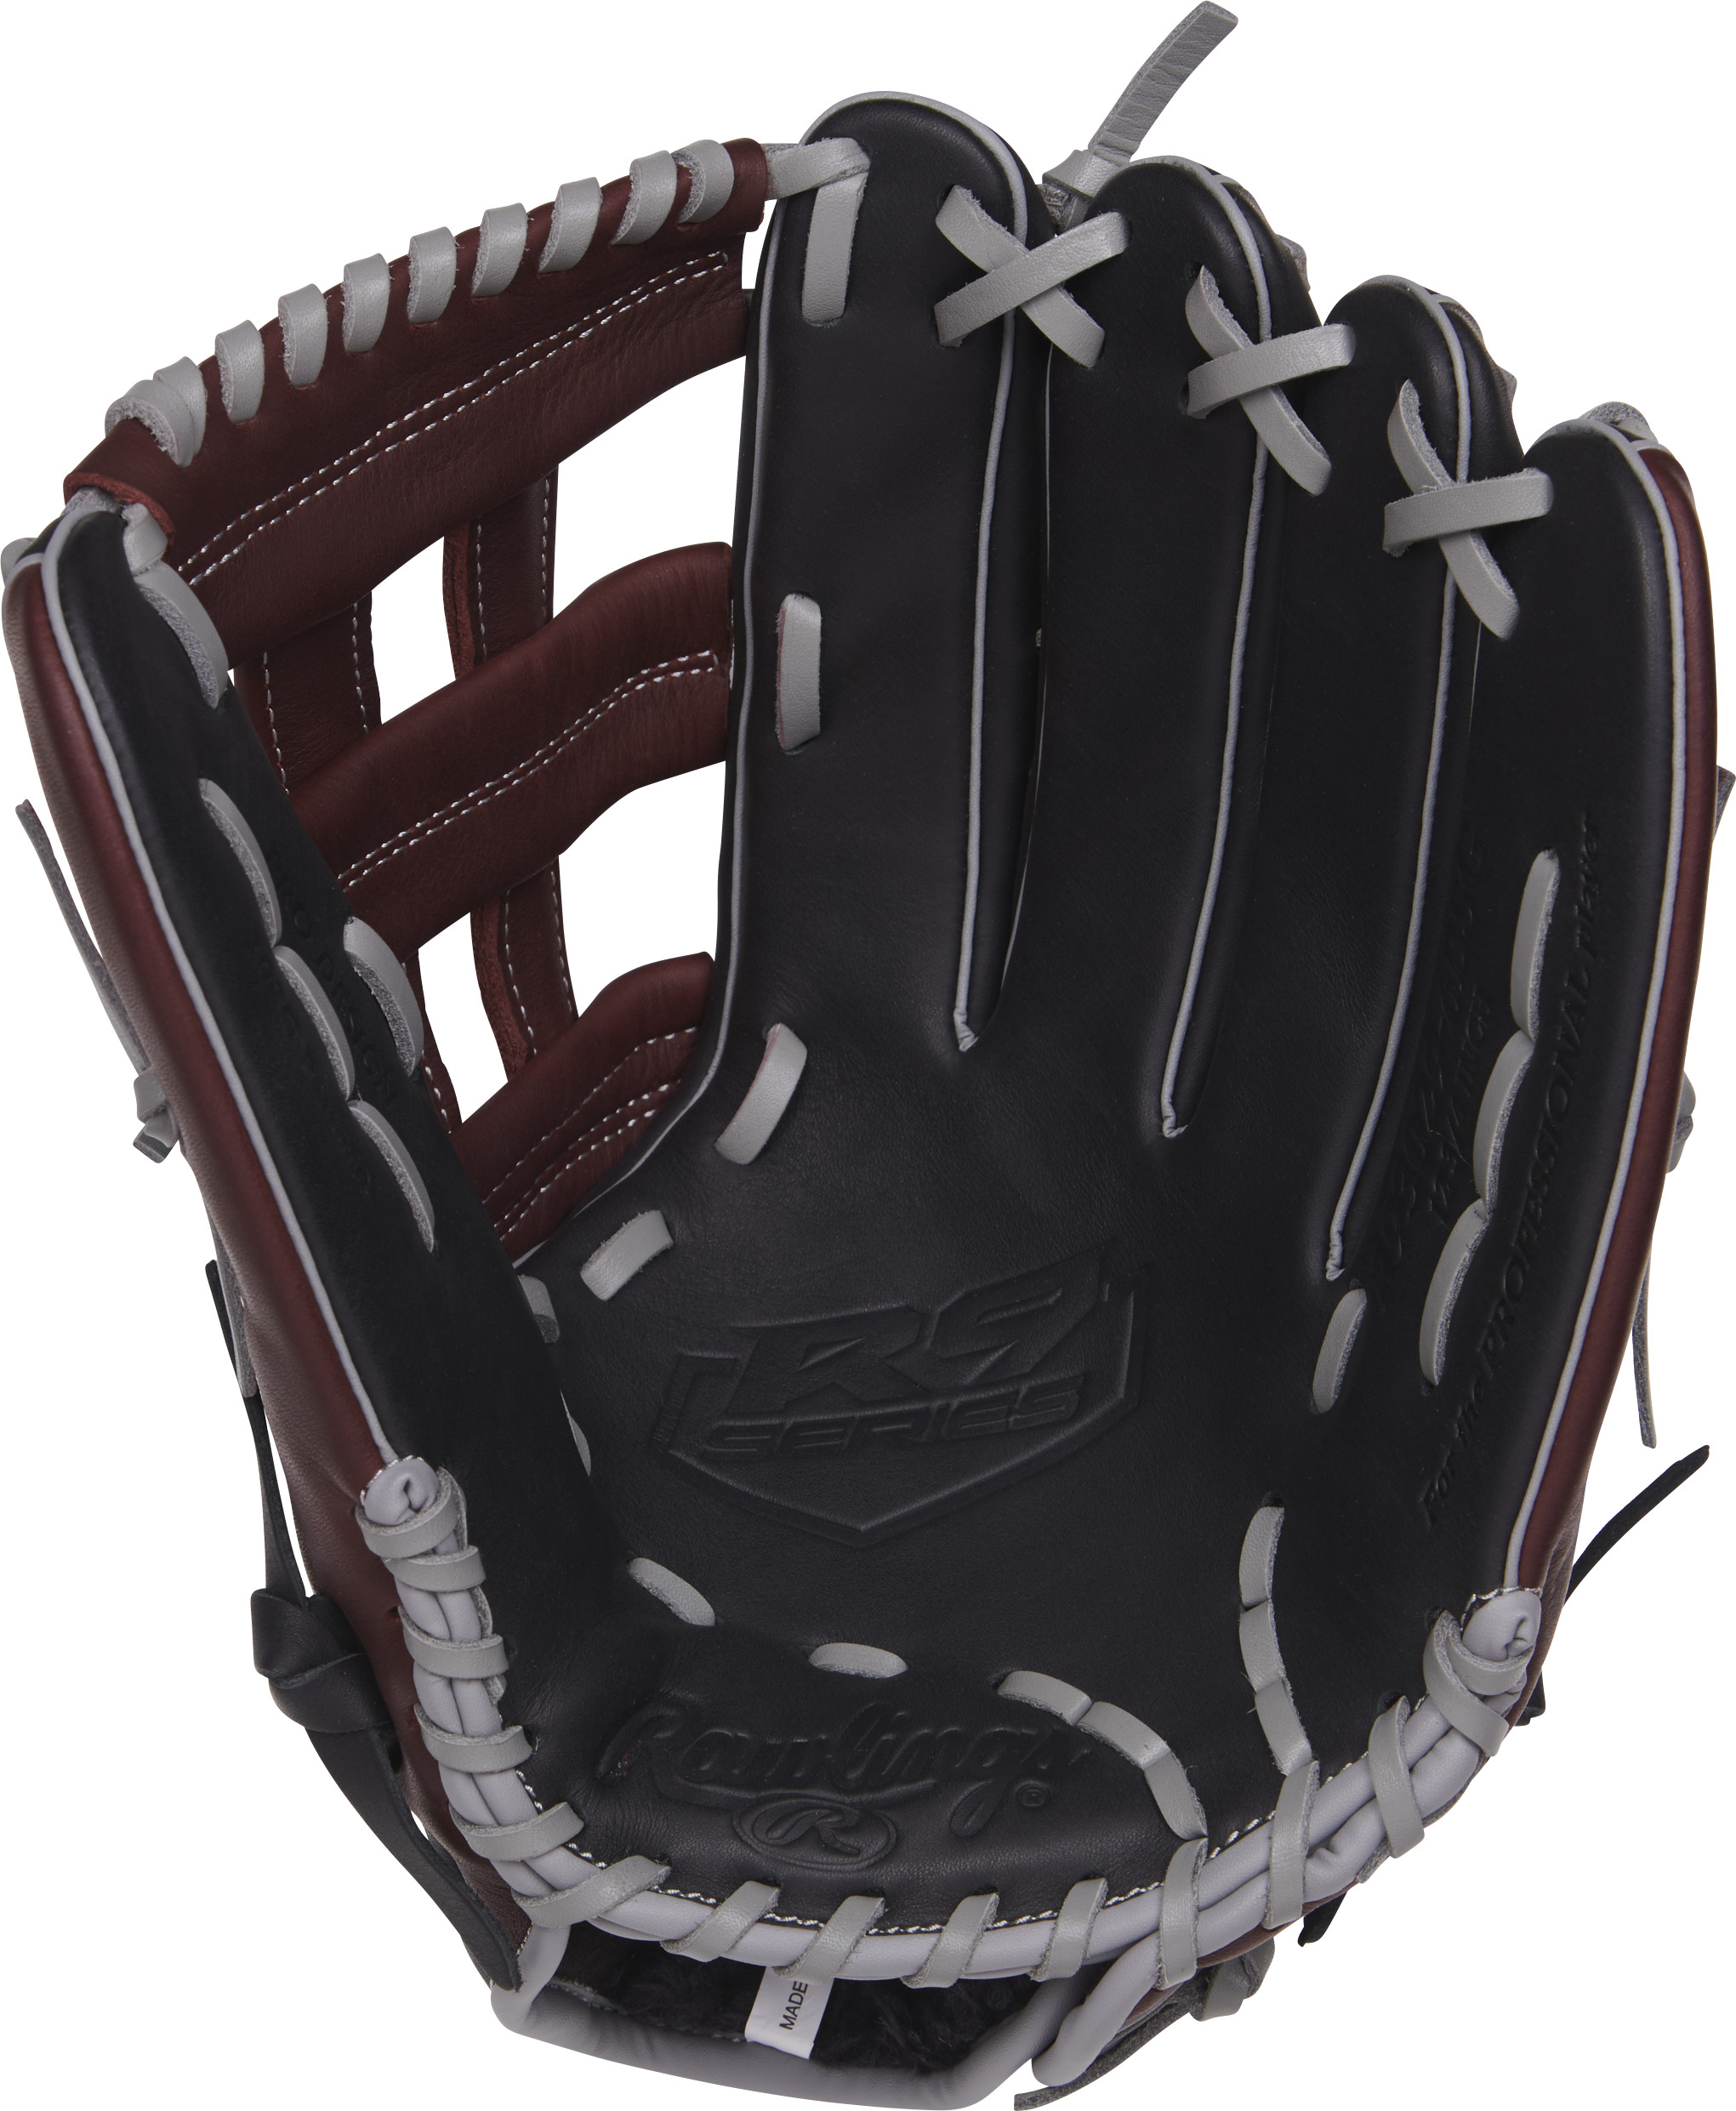 http://www.bestbatdeals.com/images/gloves/rawlings/R93029-6BSG-1.jpg